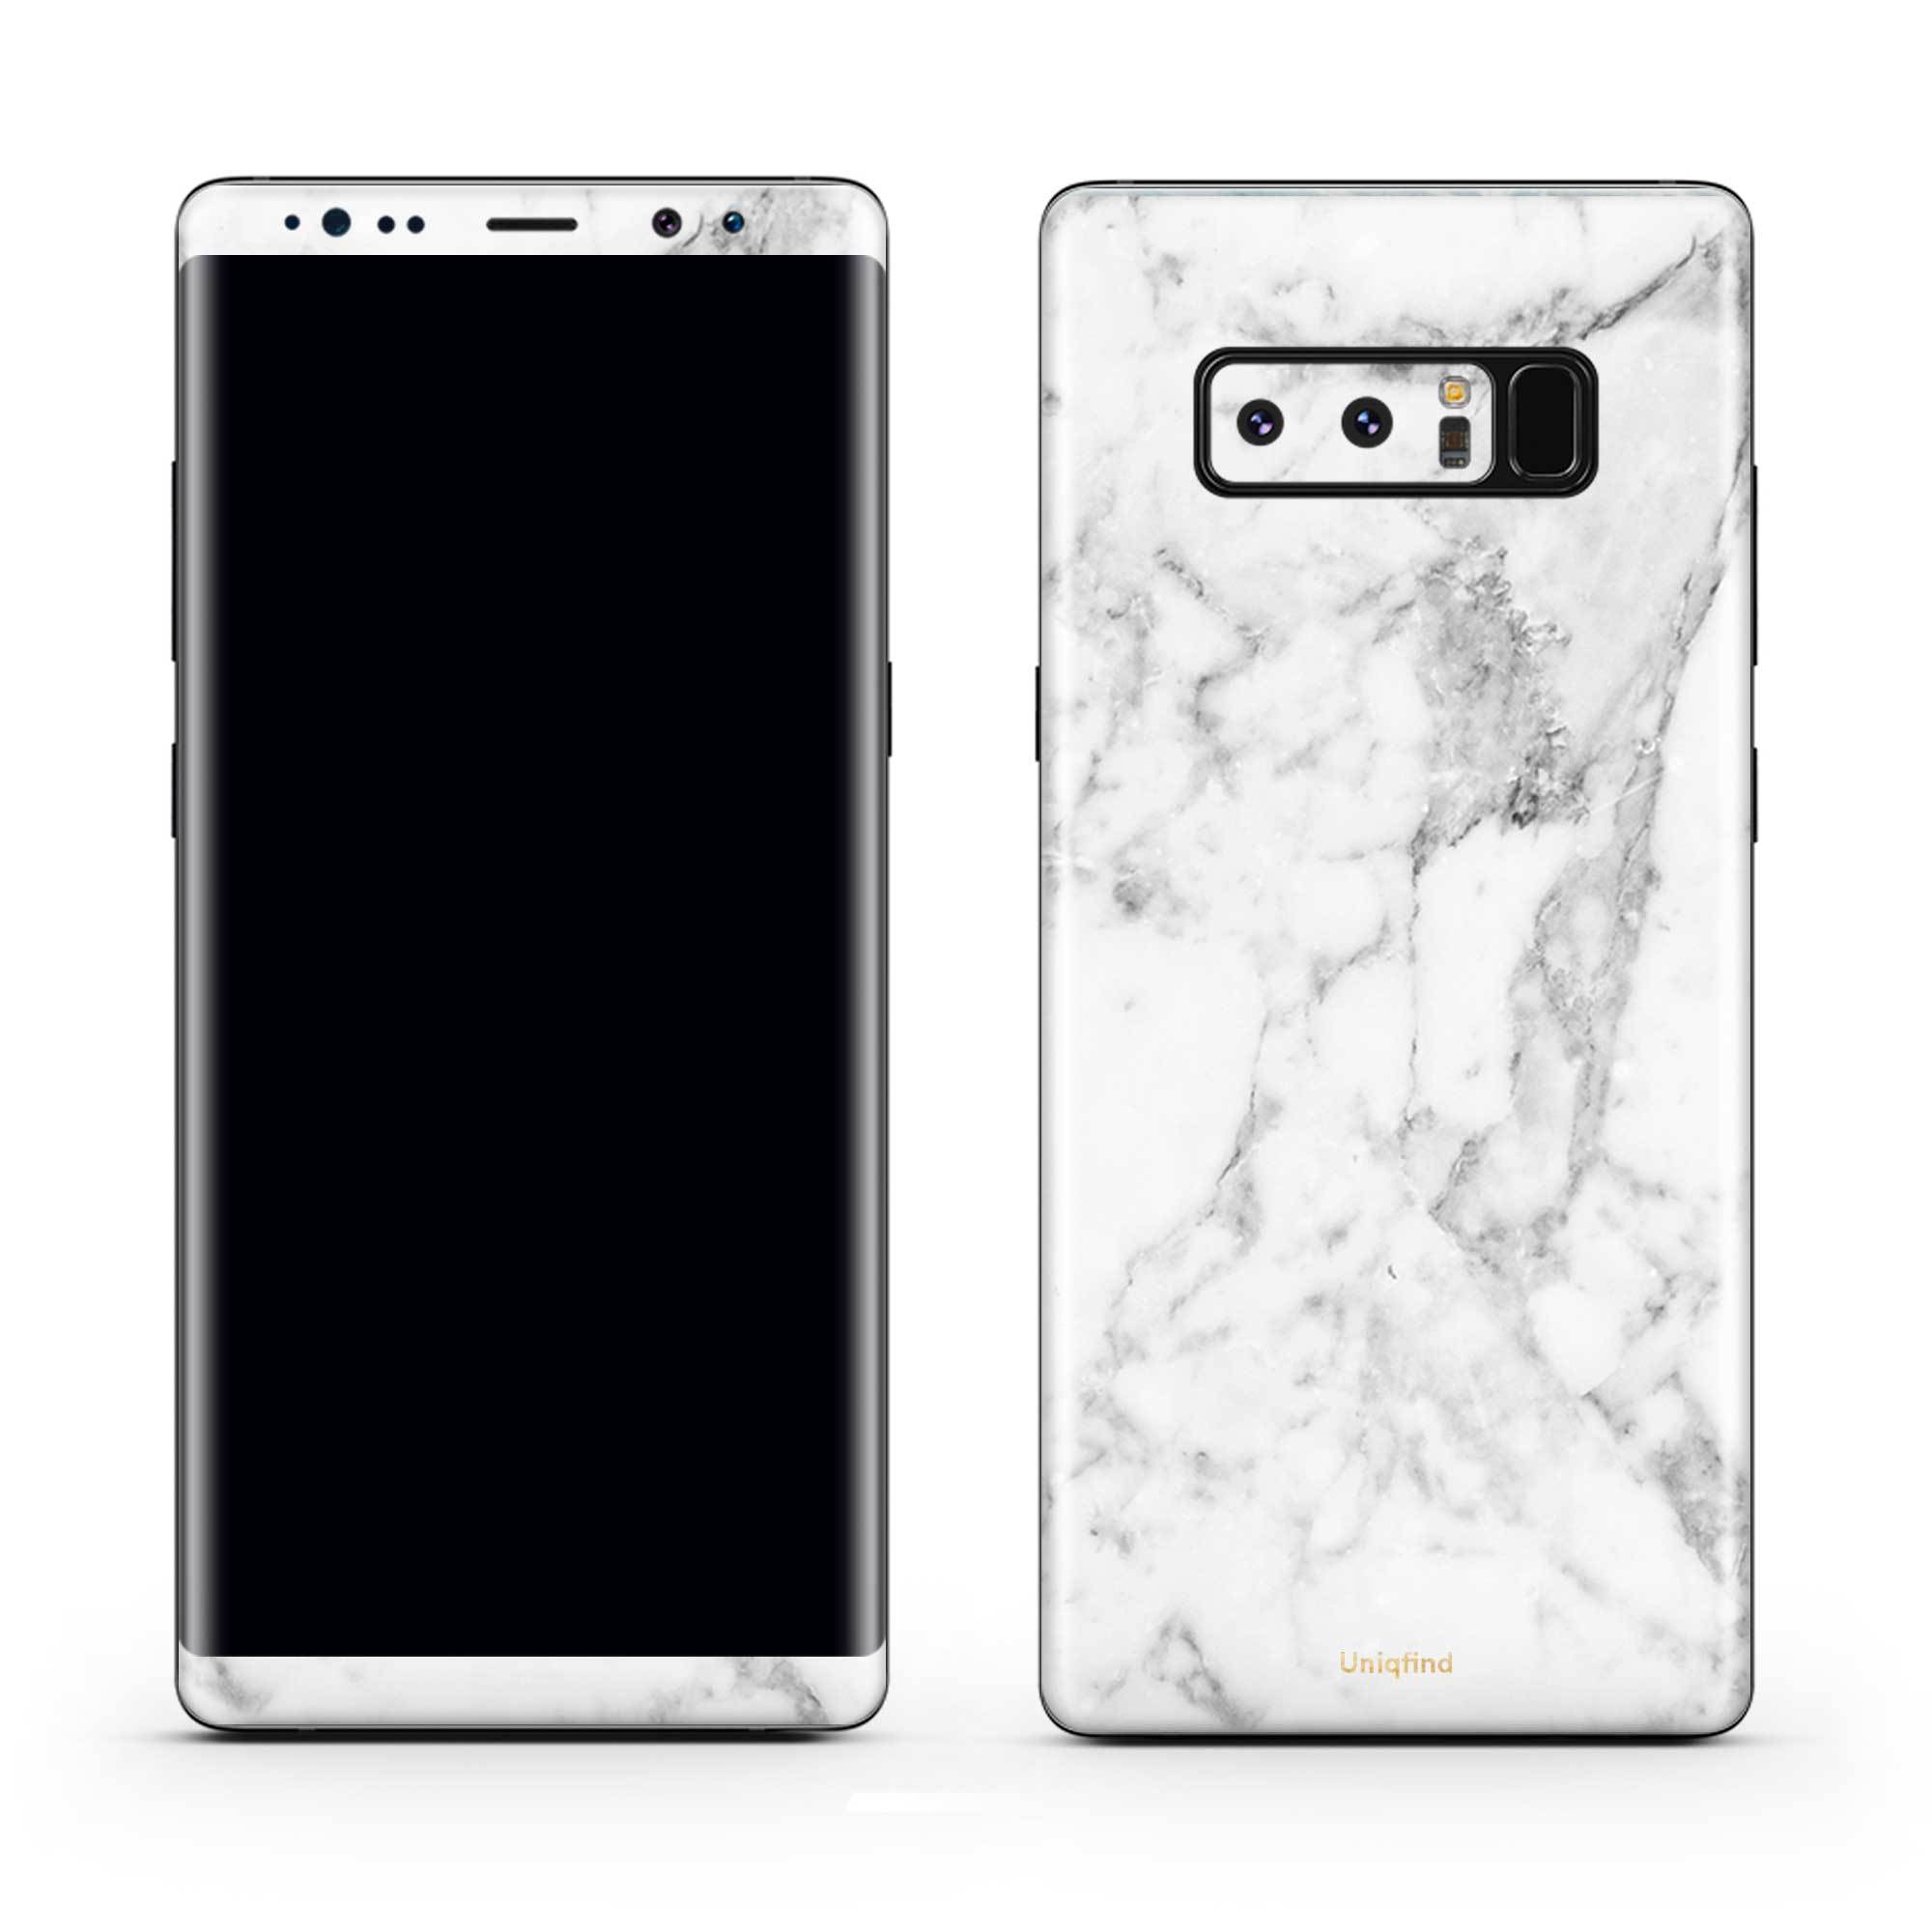 White Marble Galaxy Note 8 Skin + Case